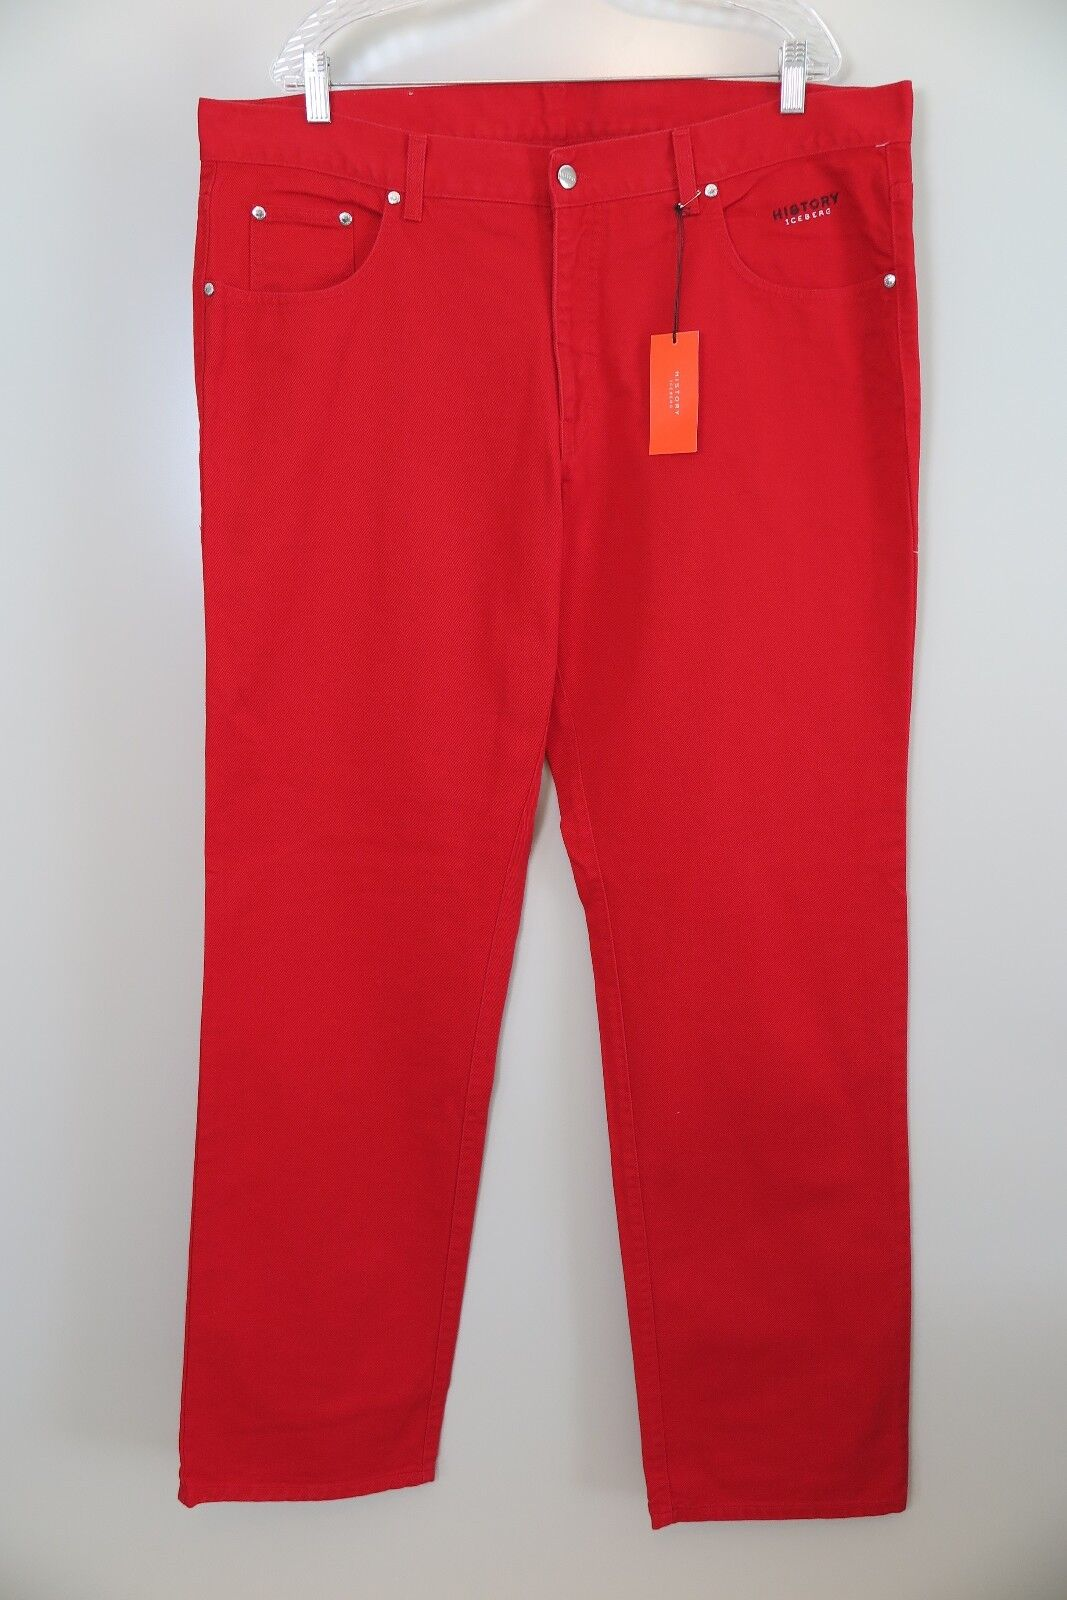 NWT History Iceberg Felix the Cat Red Jeans Size 40 (EU) Made in